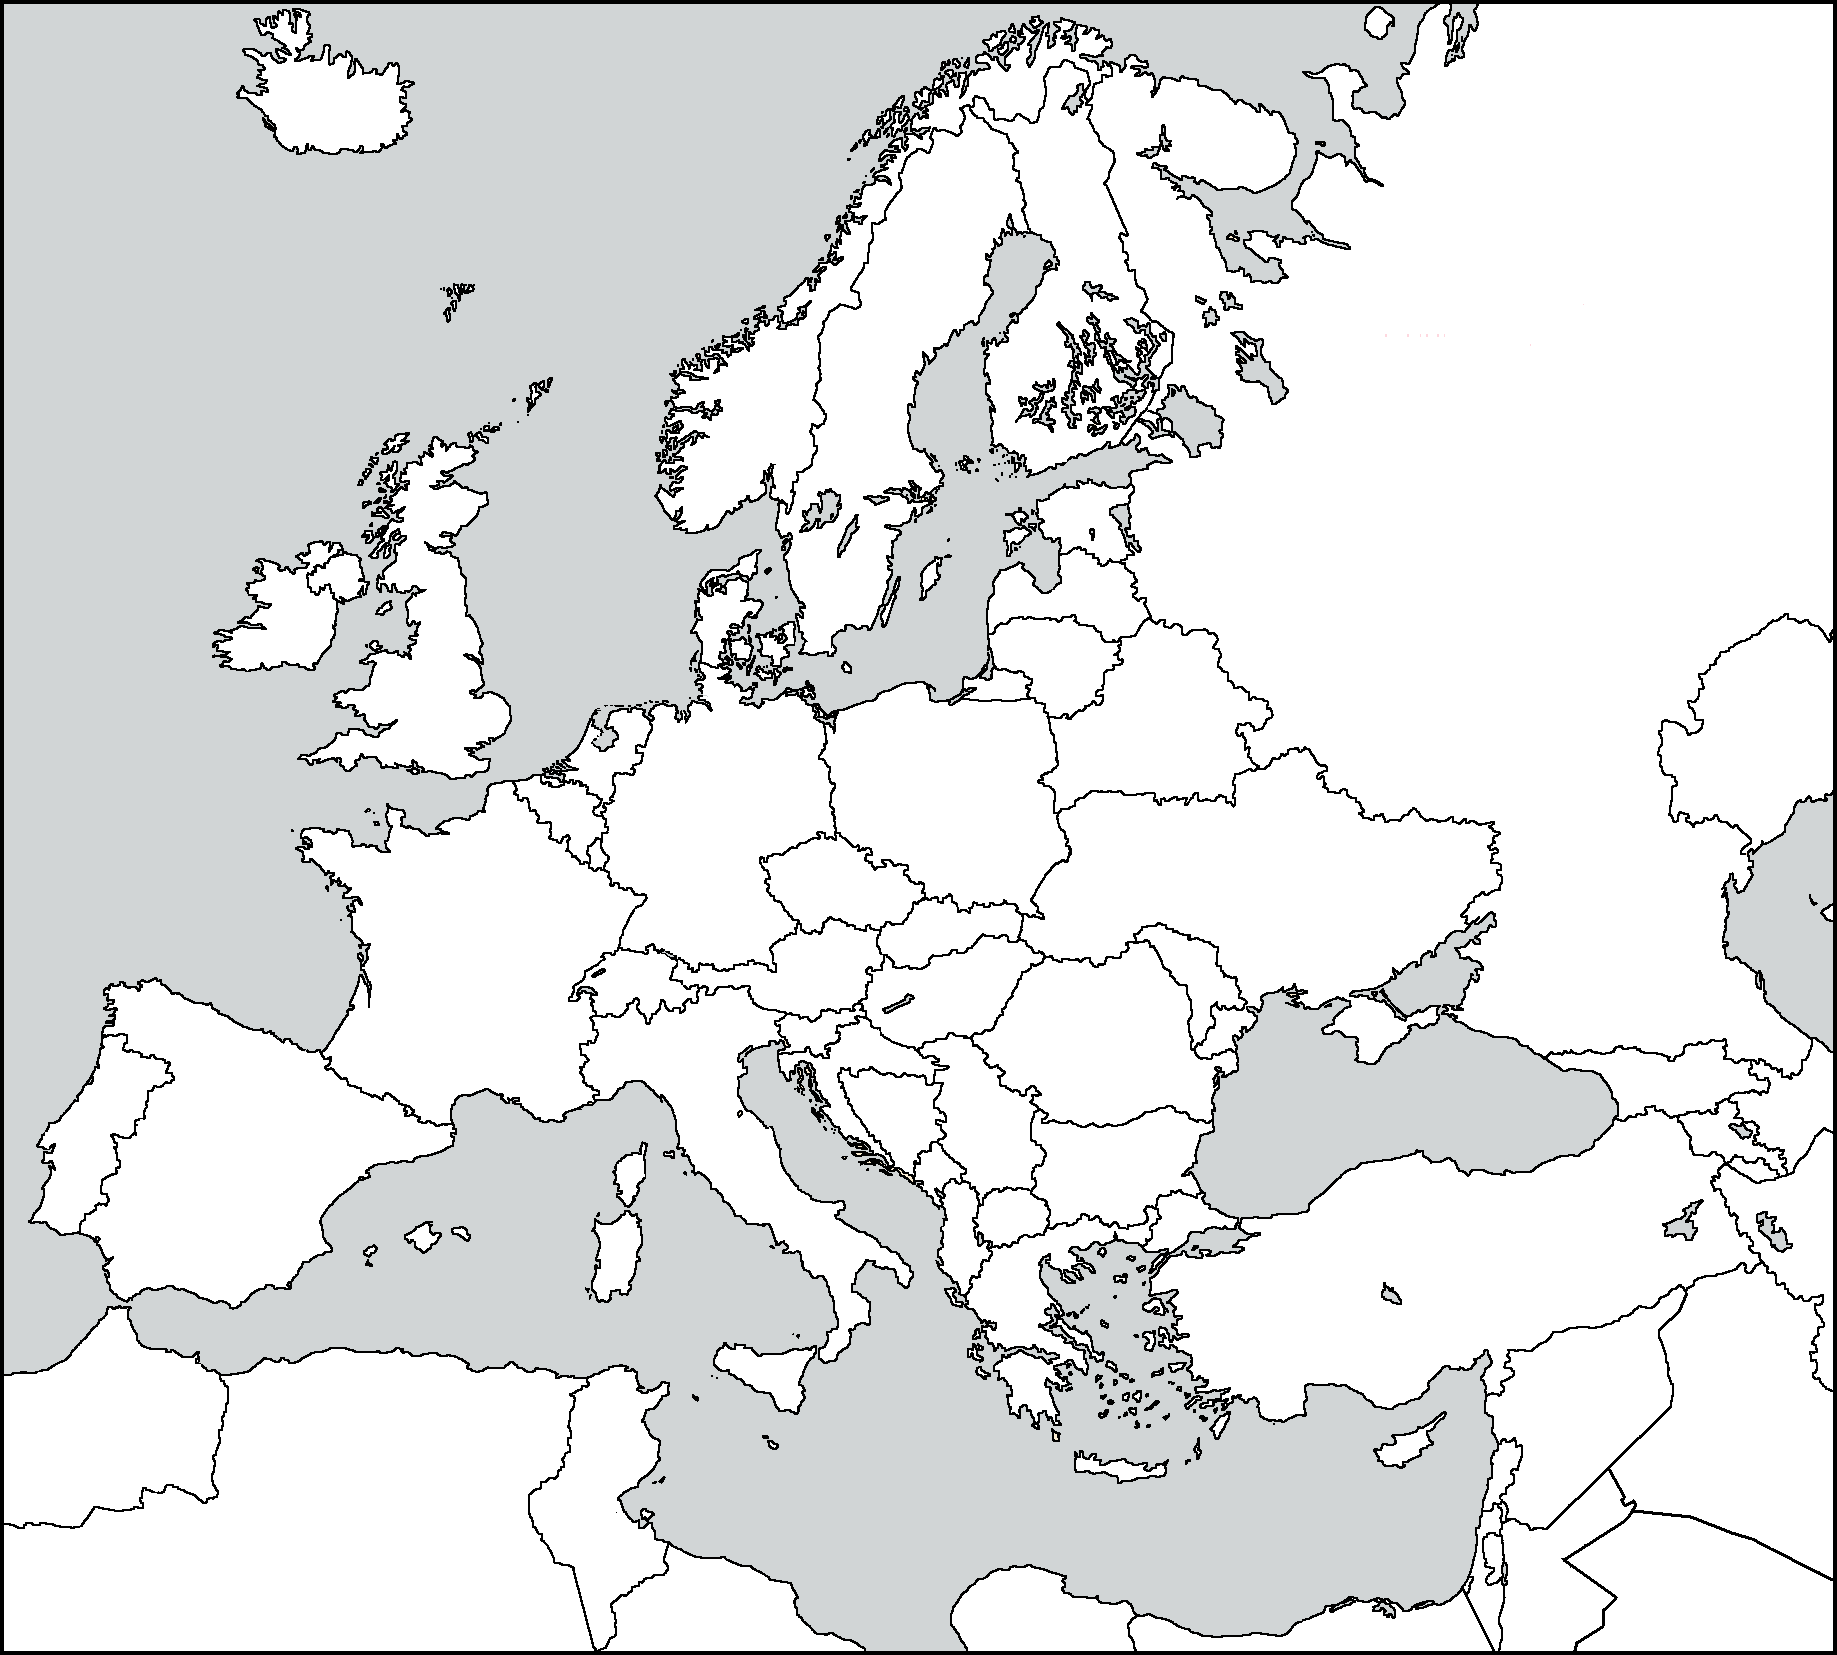 Image Blank Europe Map Without Kosovo And Liechtenstein Png